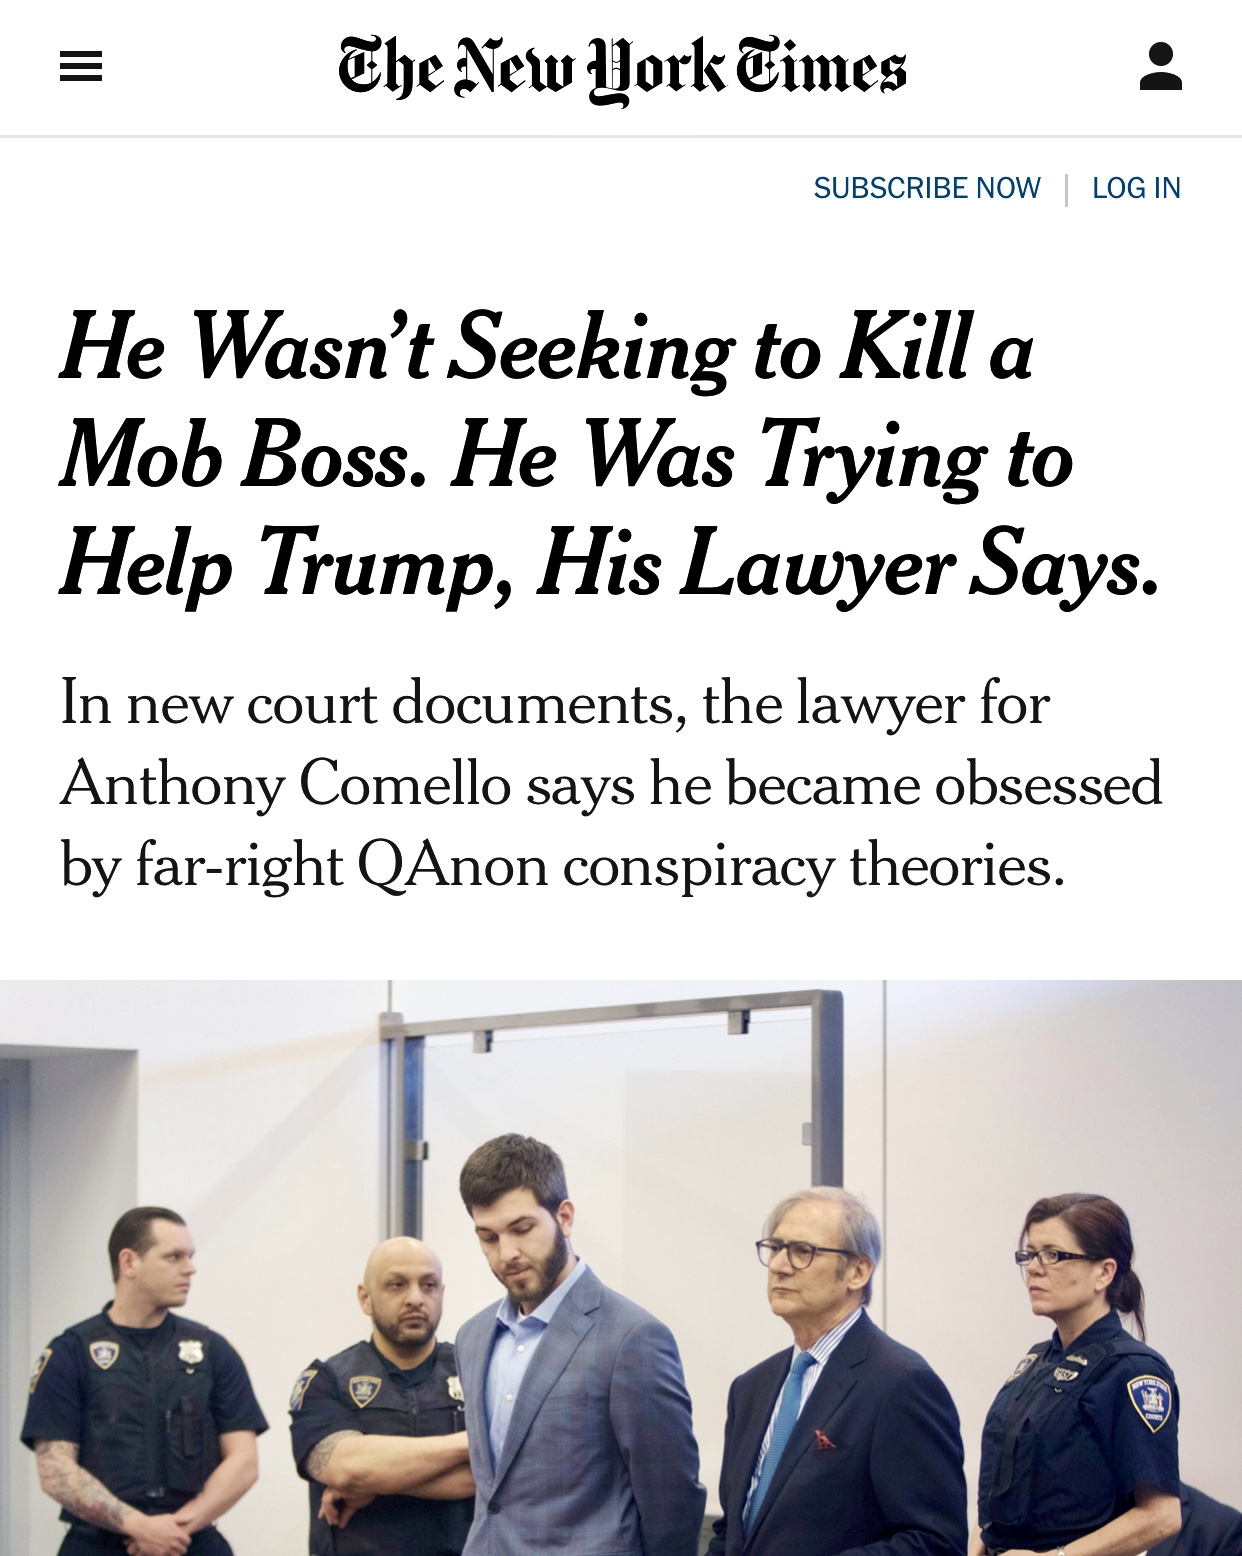 He Wasn't Seeking to Kill a Mob Boss. He Was Trying to Help Trump, His Lawyer Says. – The New York Times